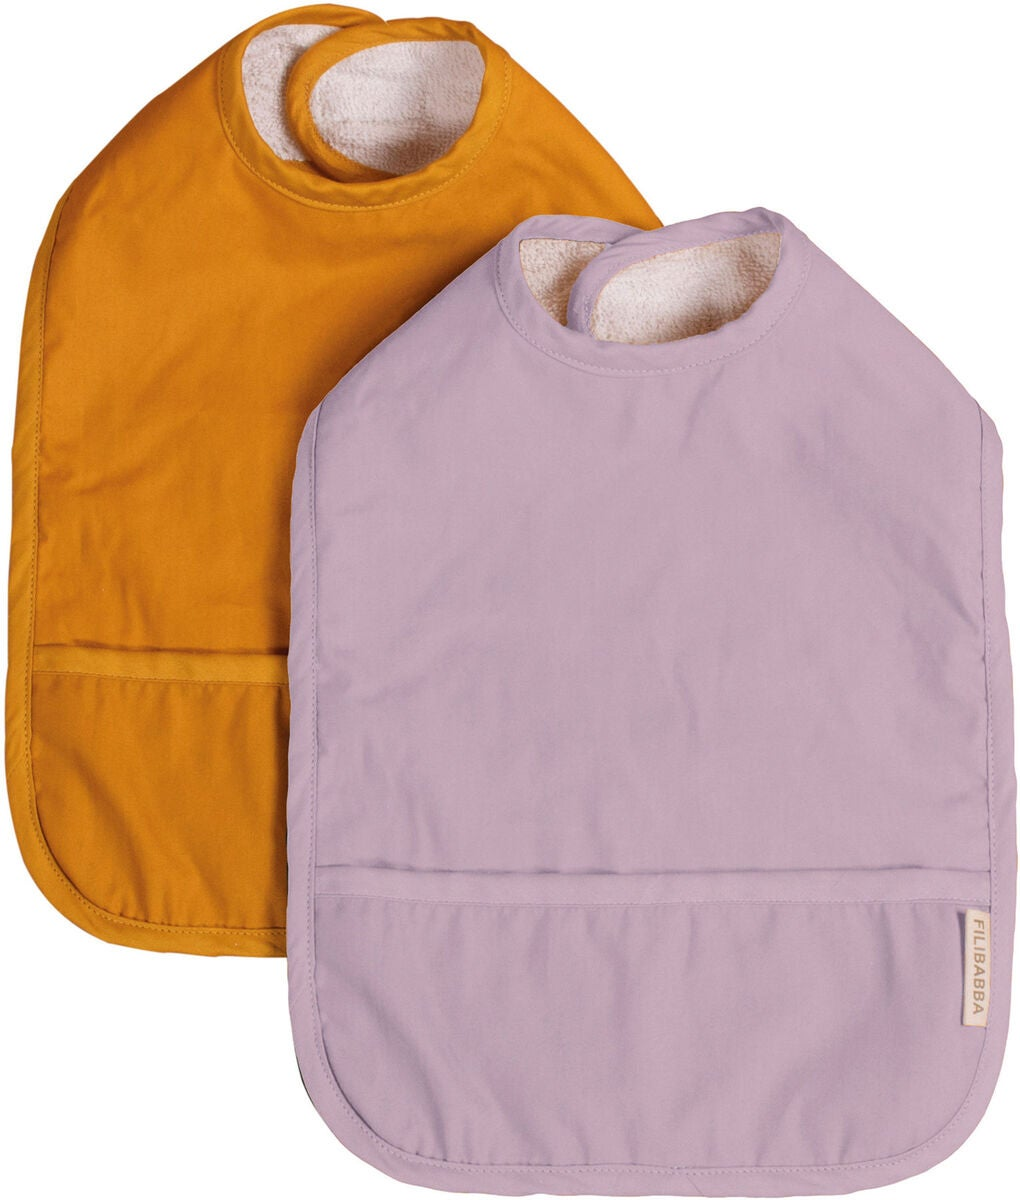 FILIBABBA Smekke med Velcro 2-Pack, Golden Mustard/Light Lavender